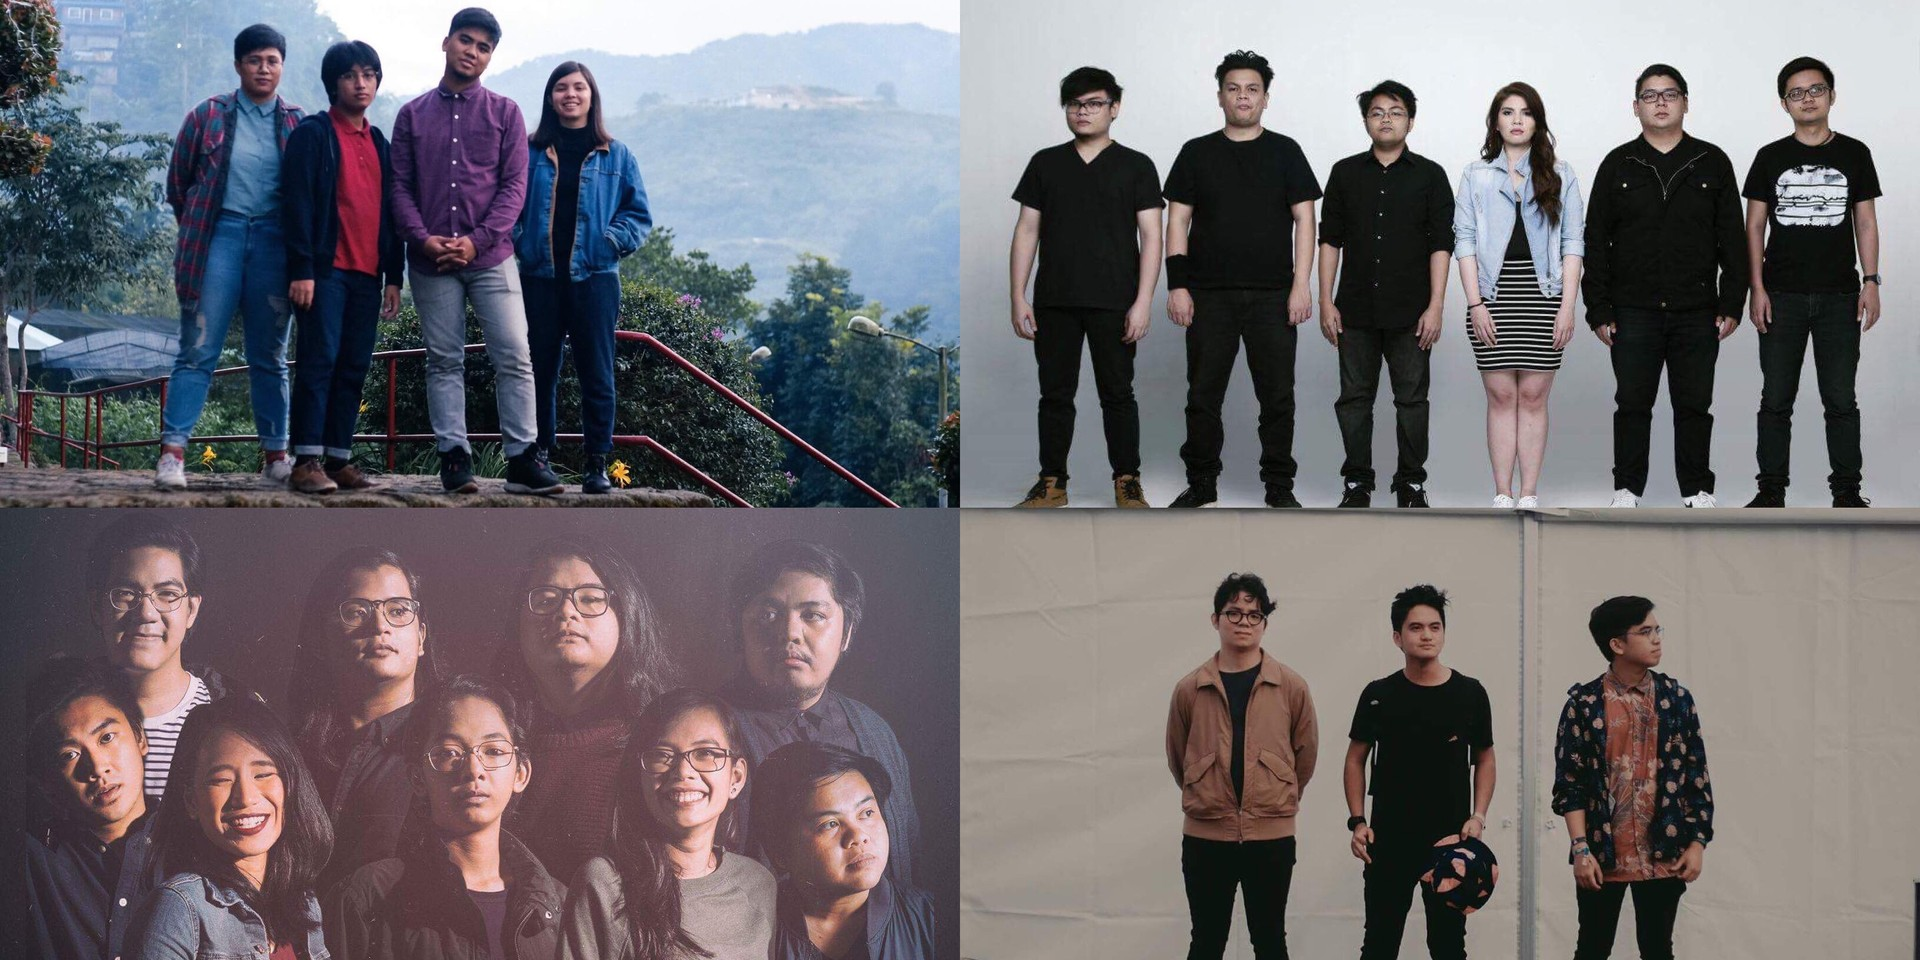 Tagaytay Art Beat unveils Phase 1 line-up – Ben&Ben, Tom's Story, and more